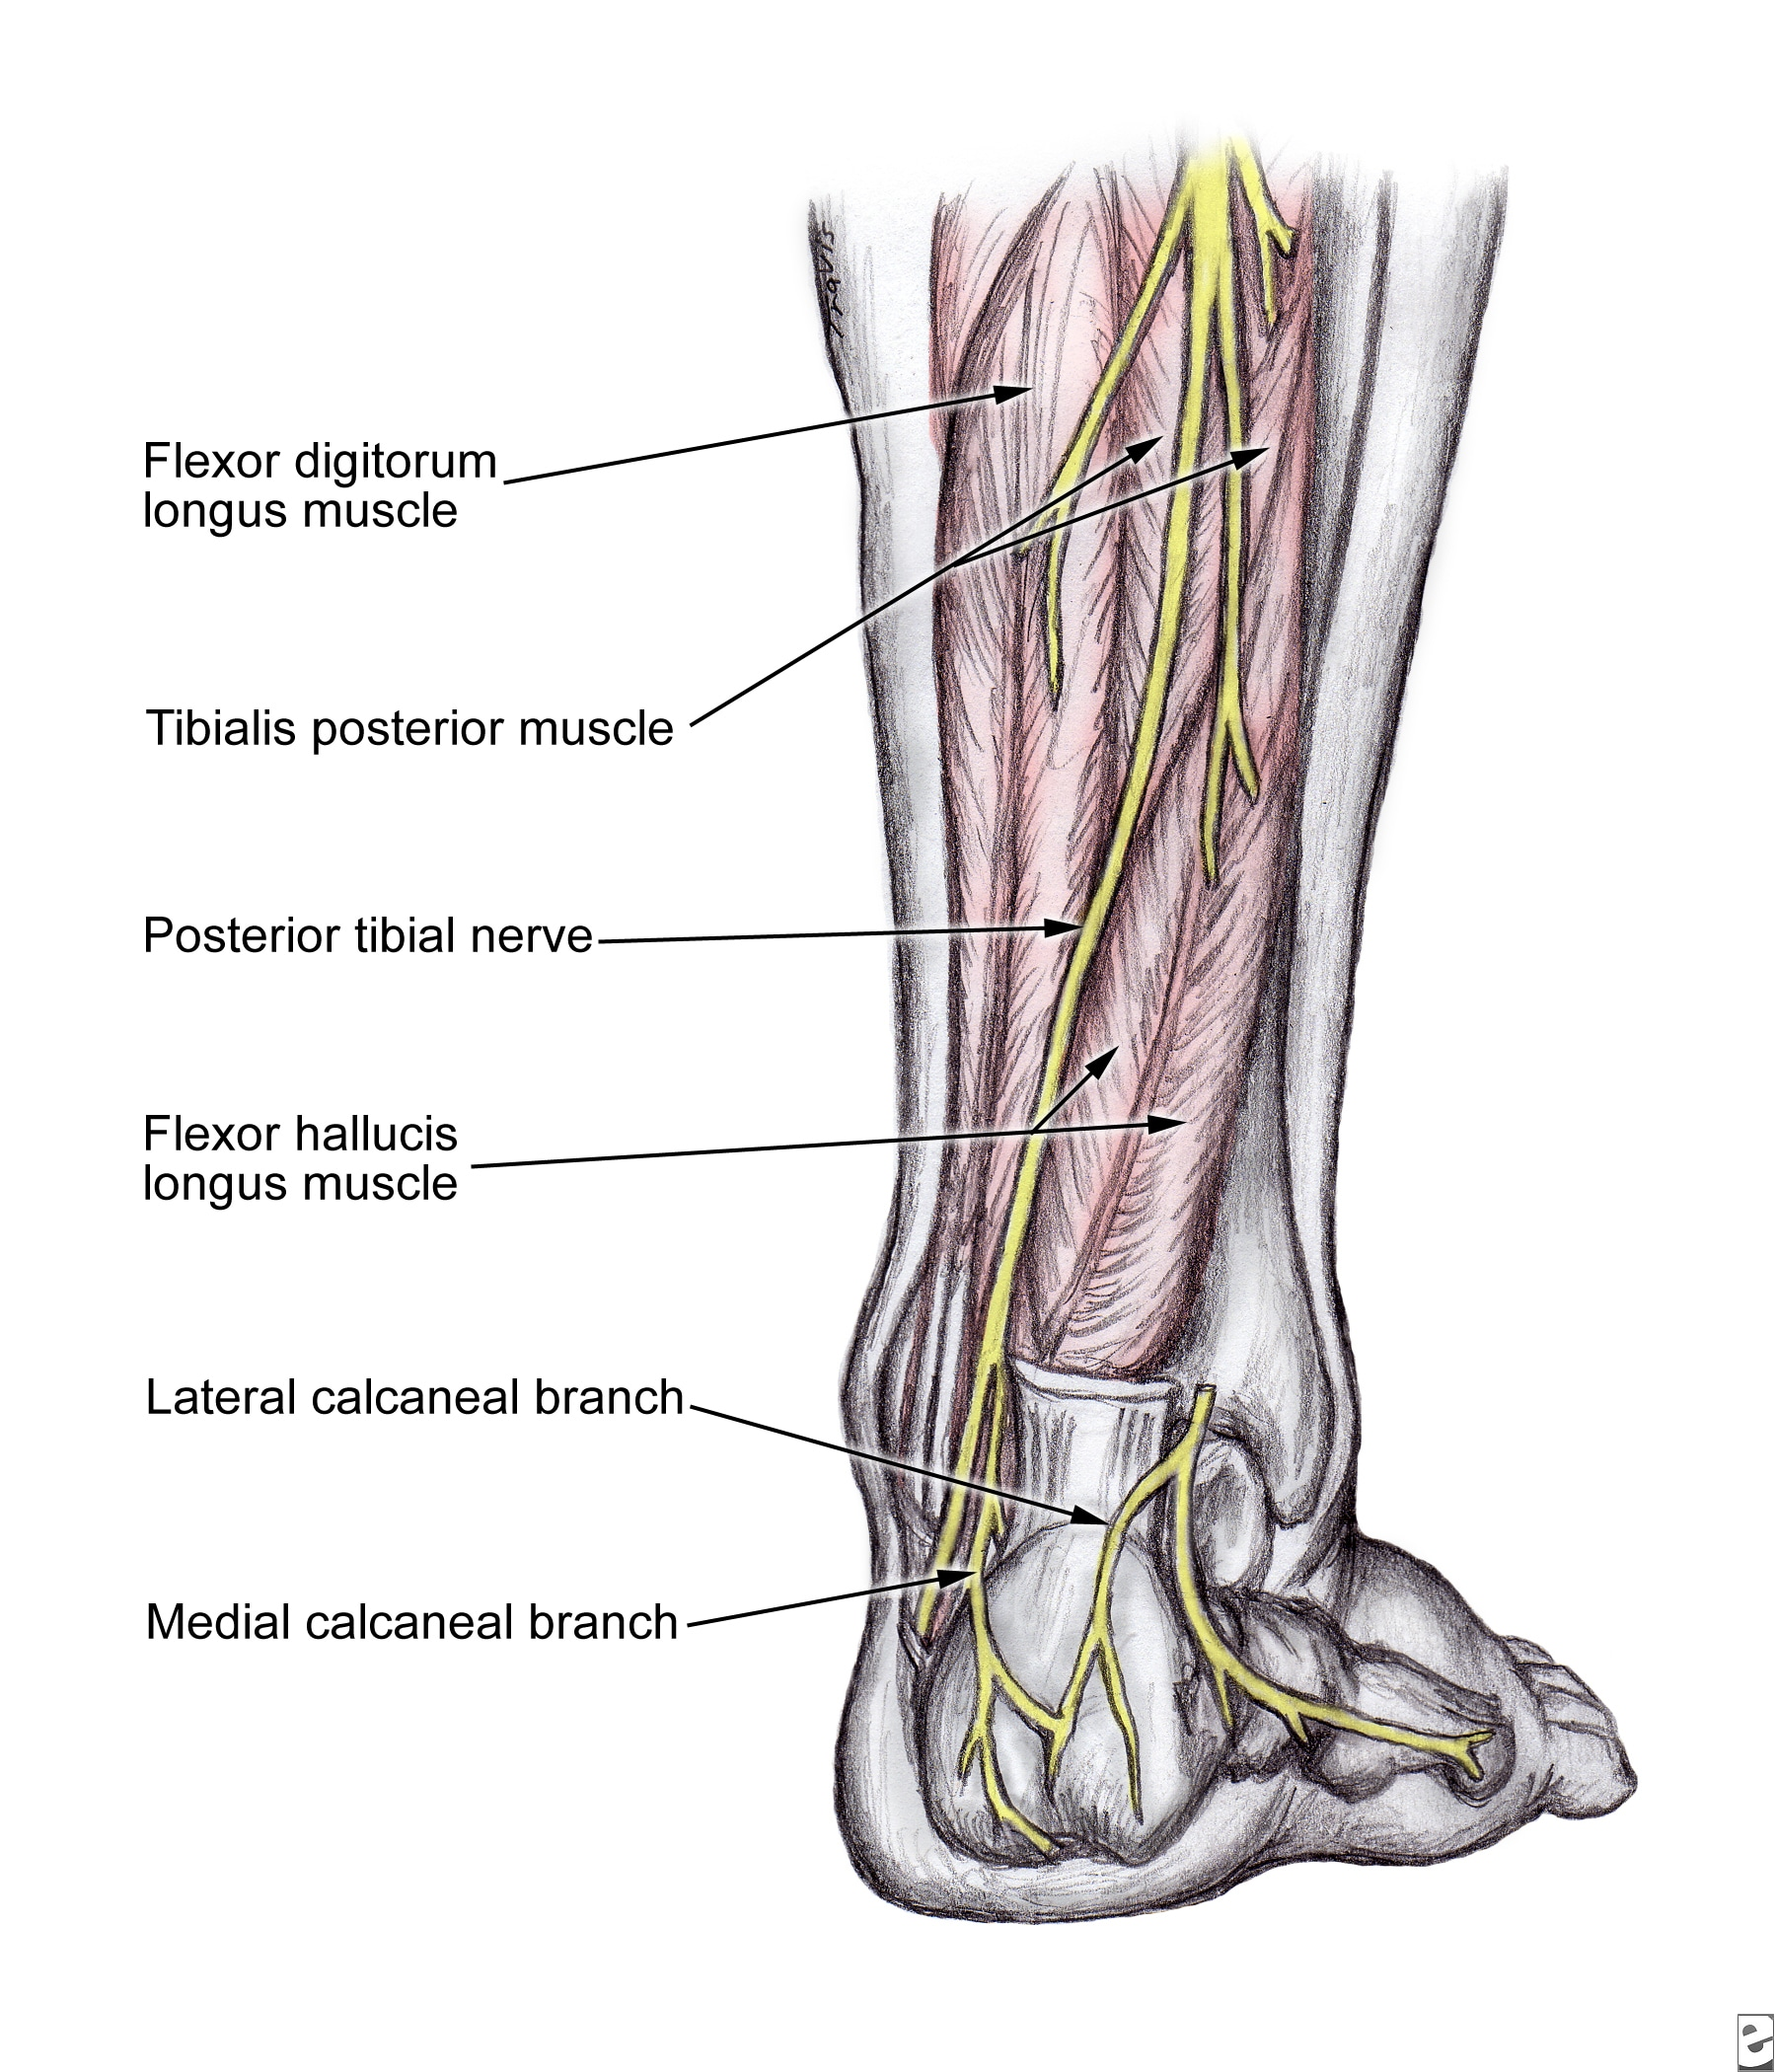 Nerves Of The Leg http://diseases.blogcu.com/nerve-block-posterior-tibial/6229247